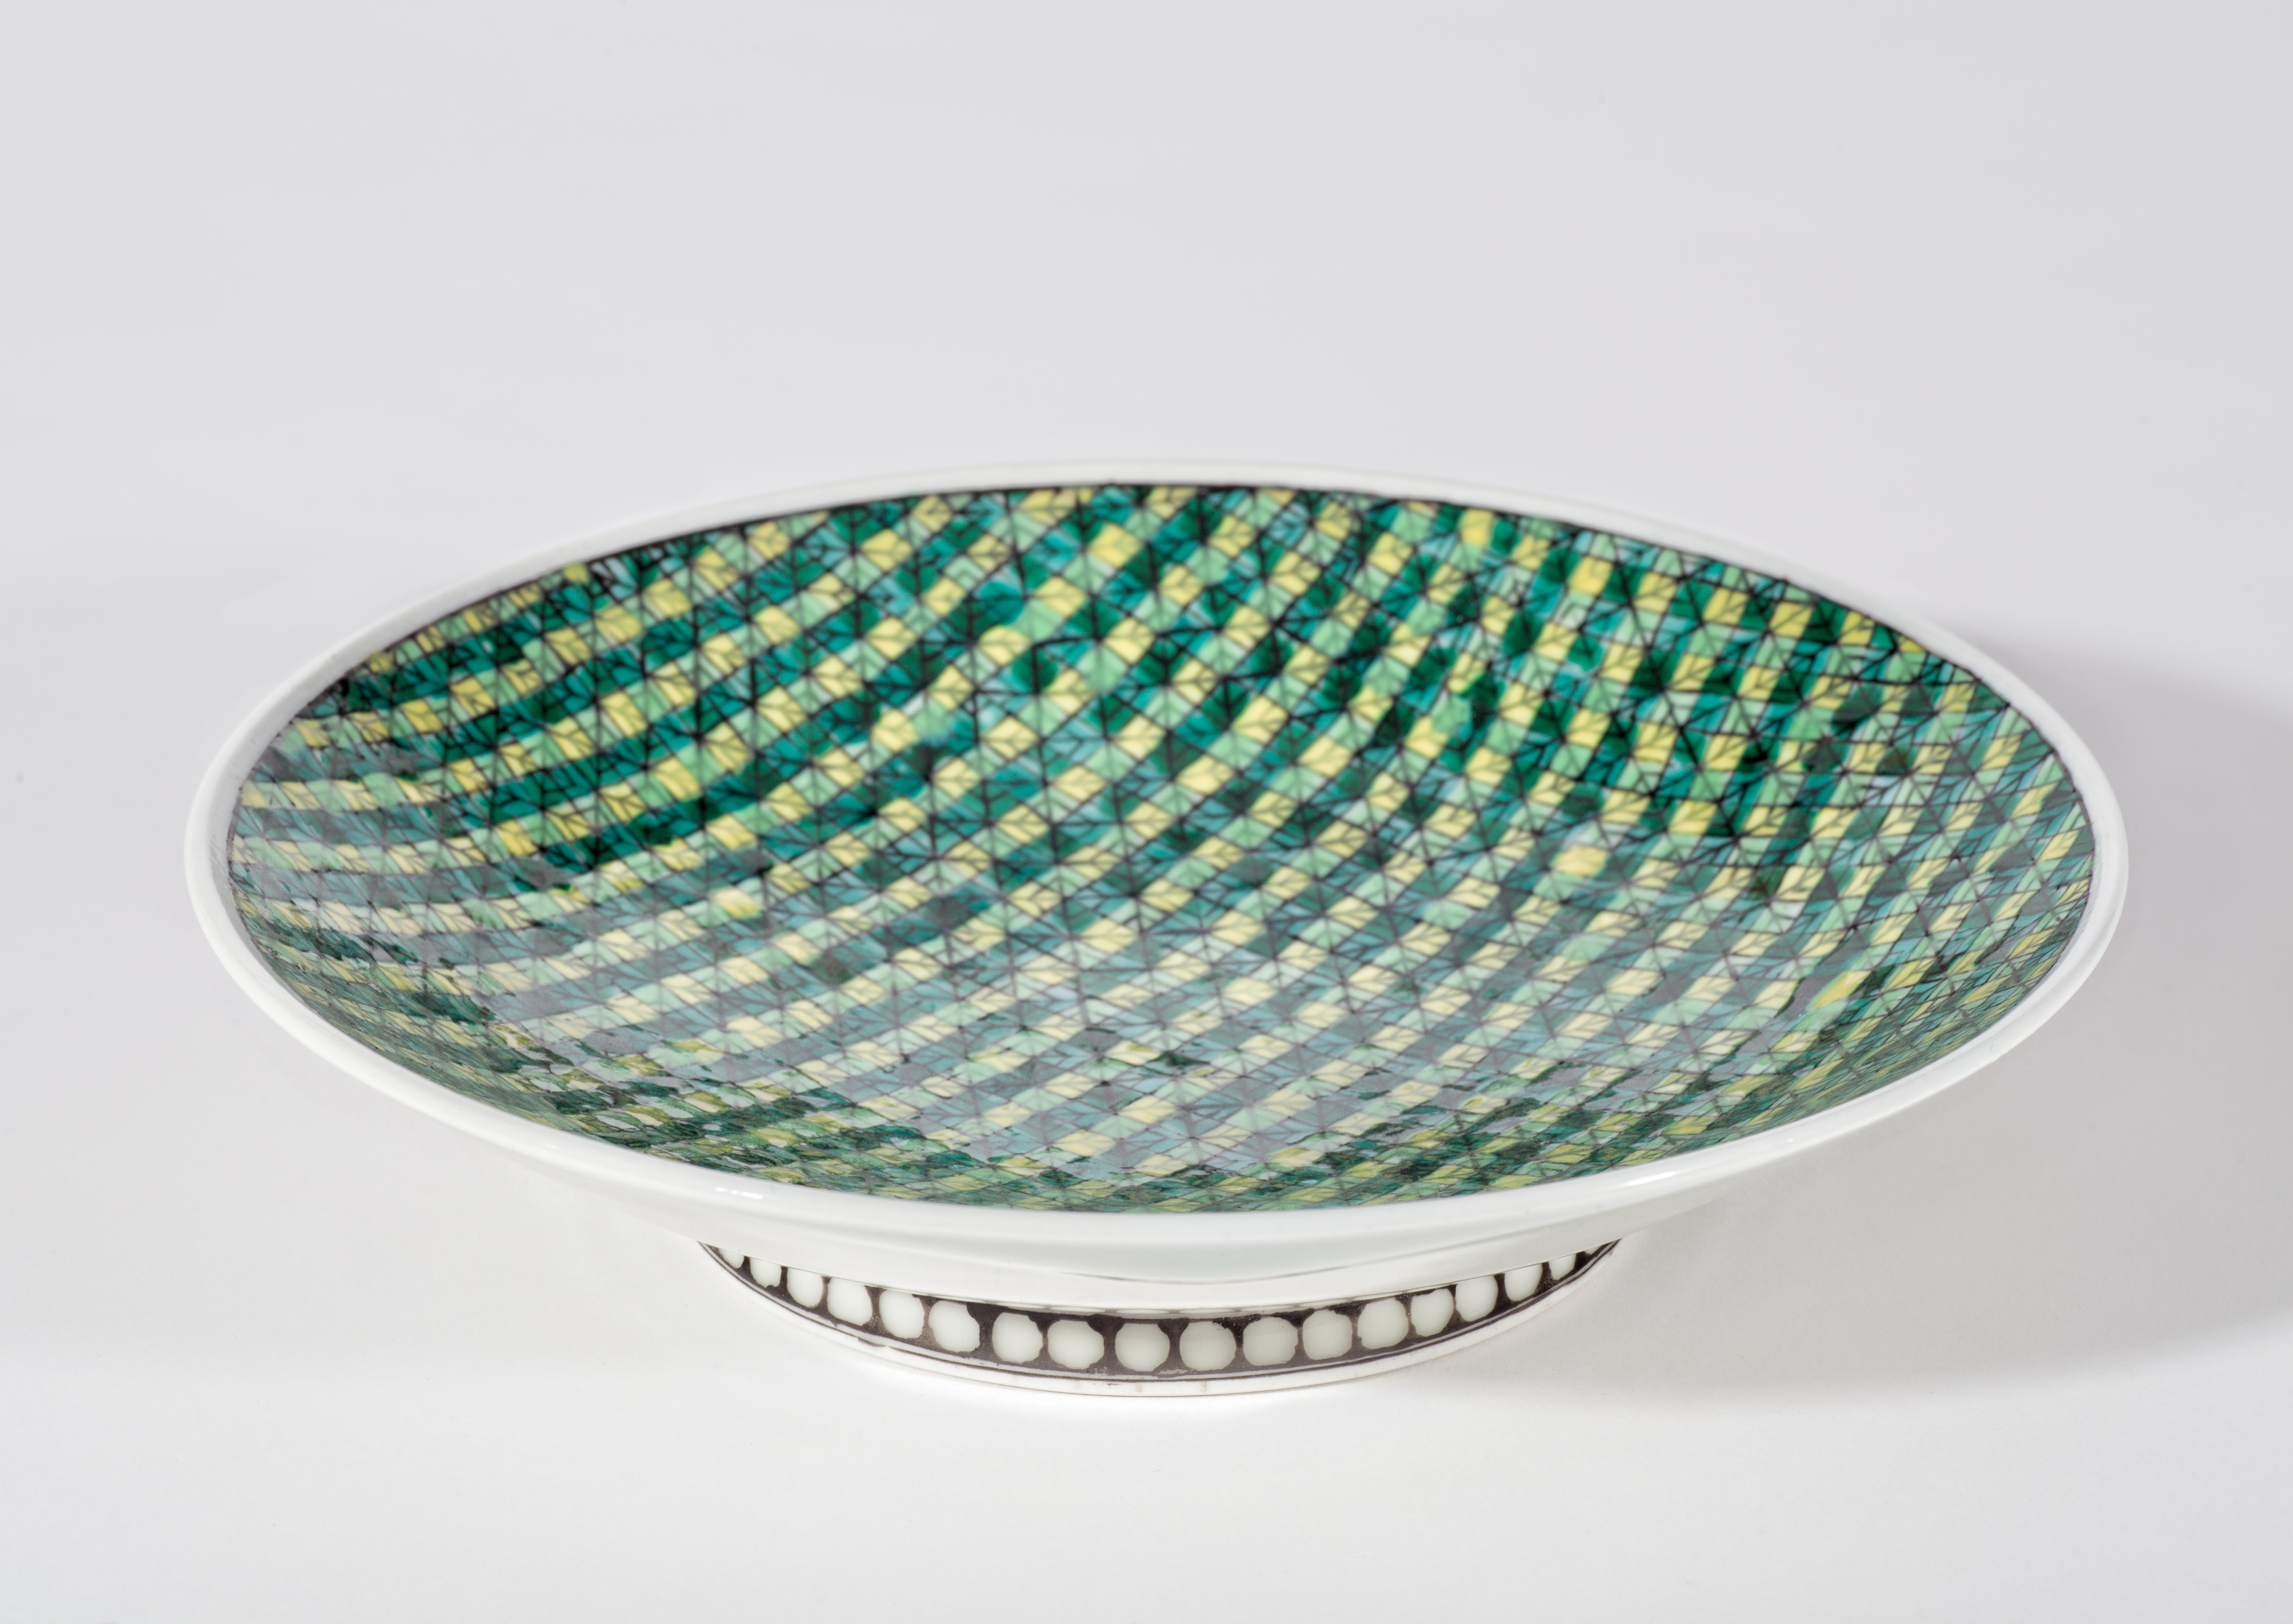 Woven Small Plate, Side View